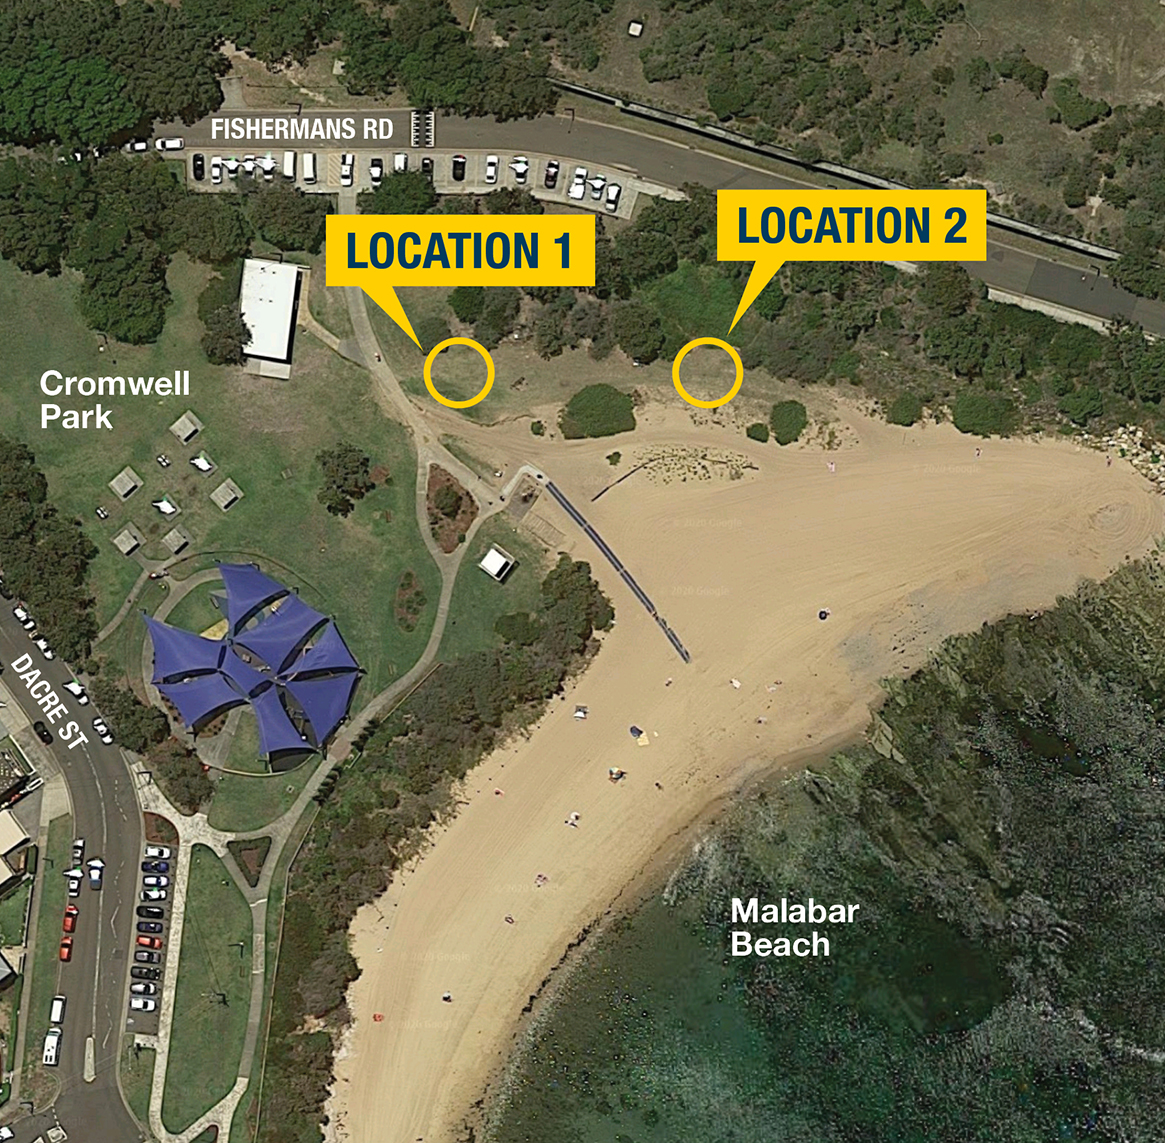 Image of location options for Malabar outdoor gym